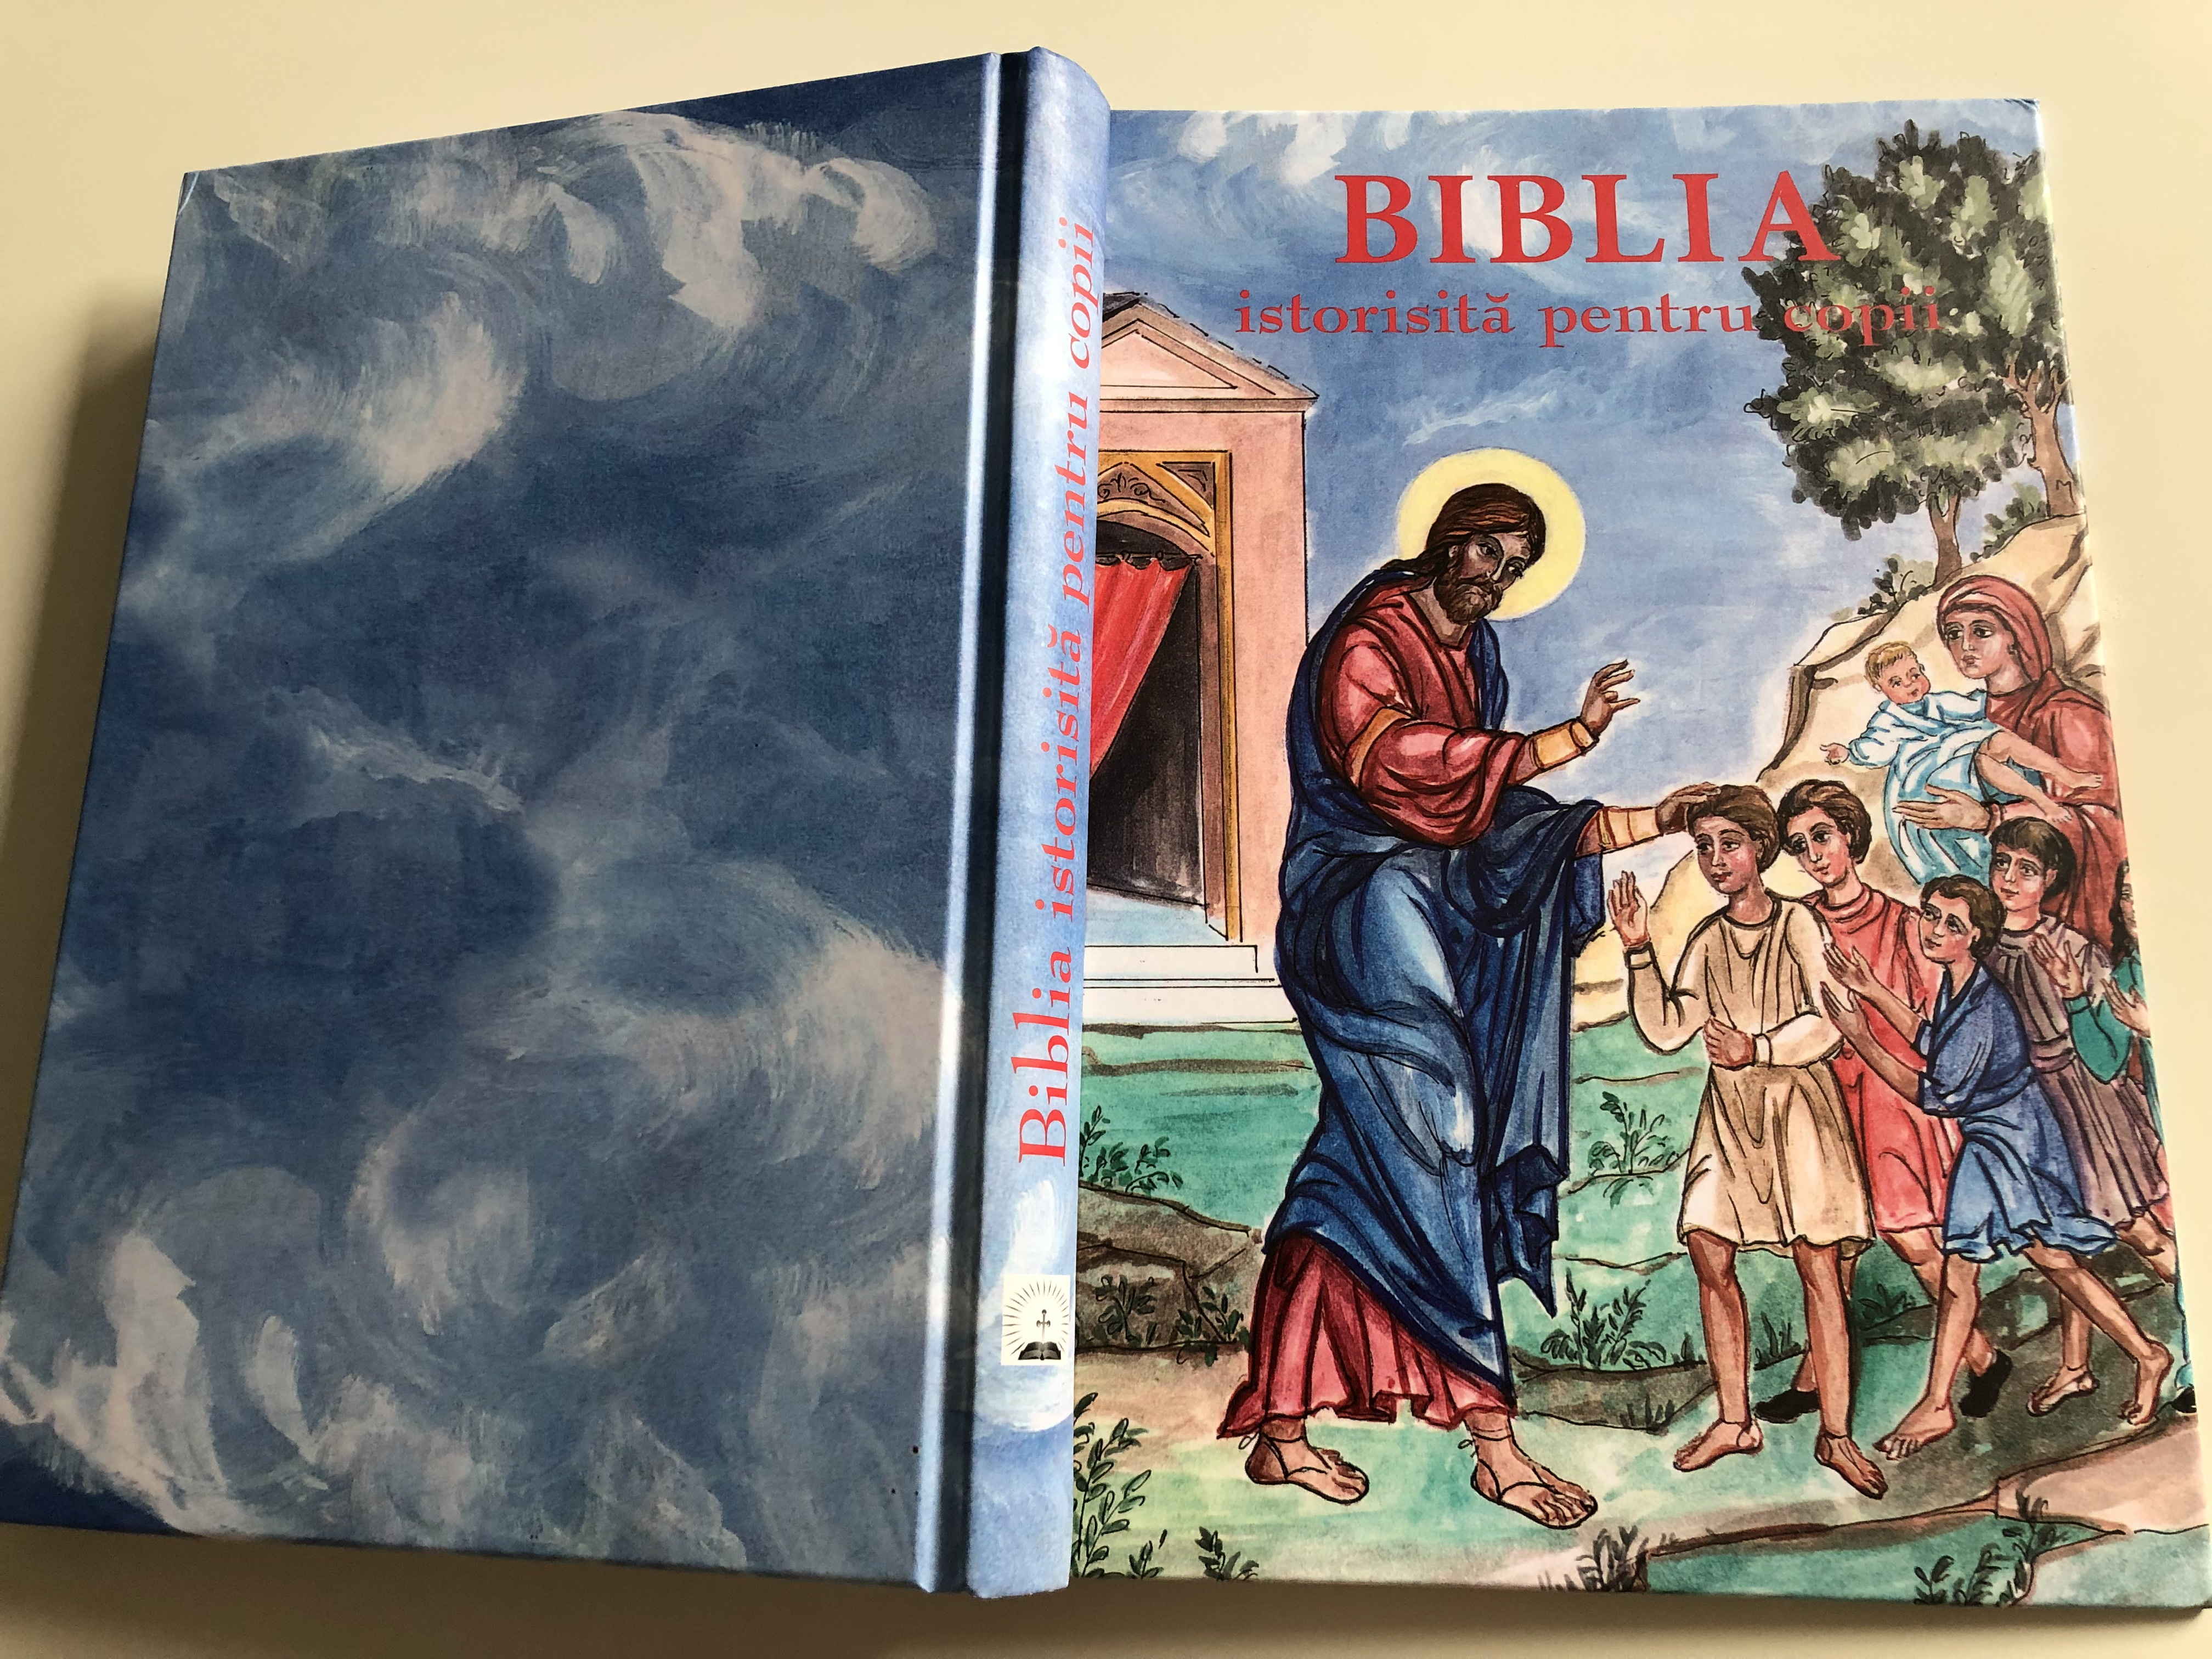 -biblia-istorisit-pentru-copii-bible-stories-for-children-romanian-orthodox-children-s-bible-hardcover-2013-orthodox-style-illustrations-by-martha-xynopoulou-kapetanakou-societ-ii-biblice-interconfesionale-din-rom-n-6357116-.jpg